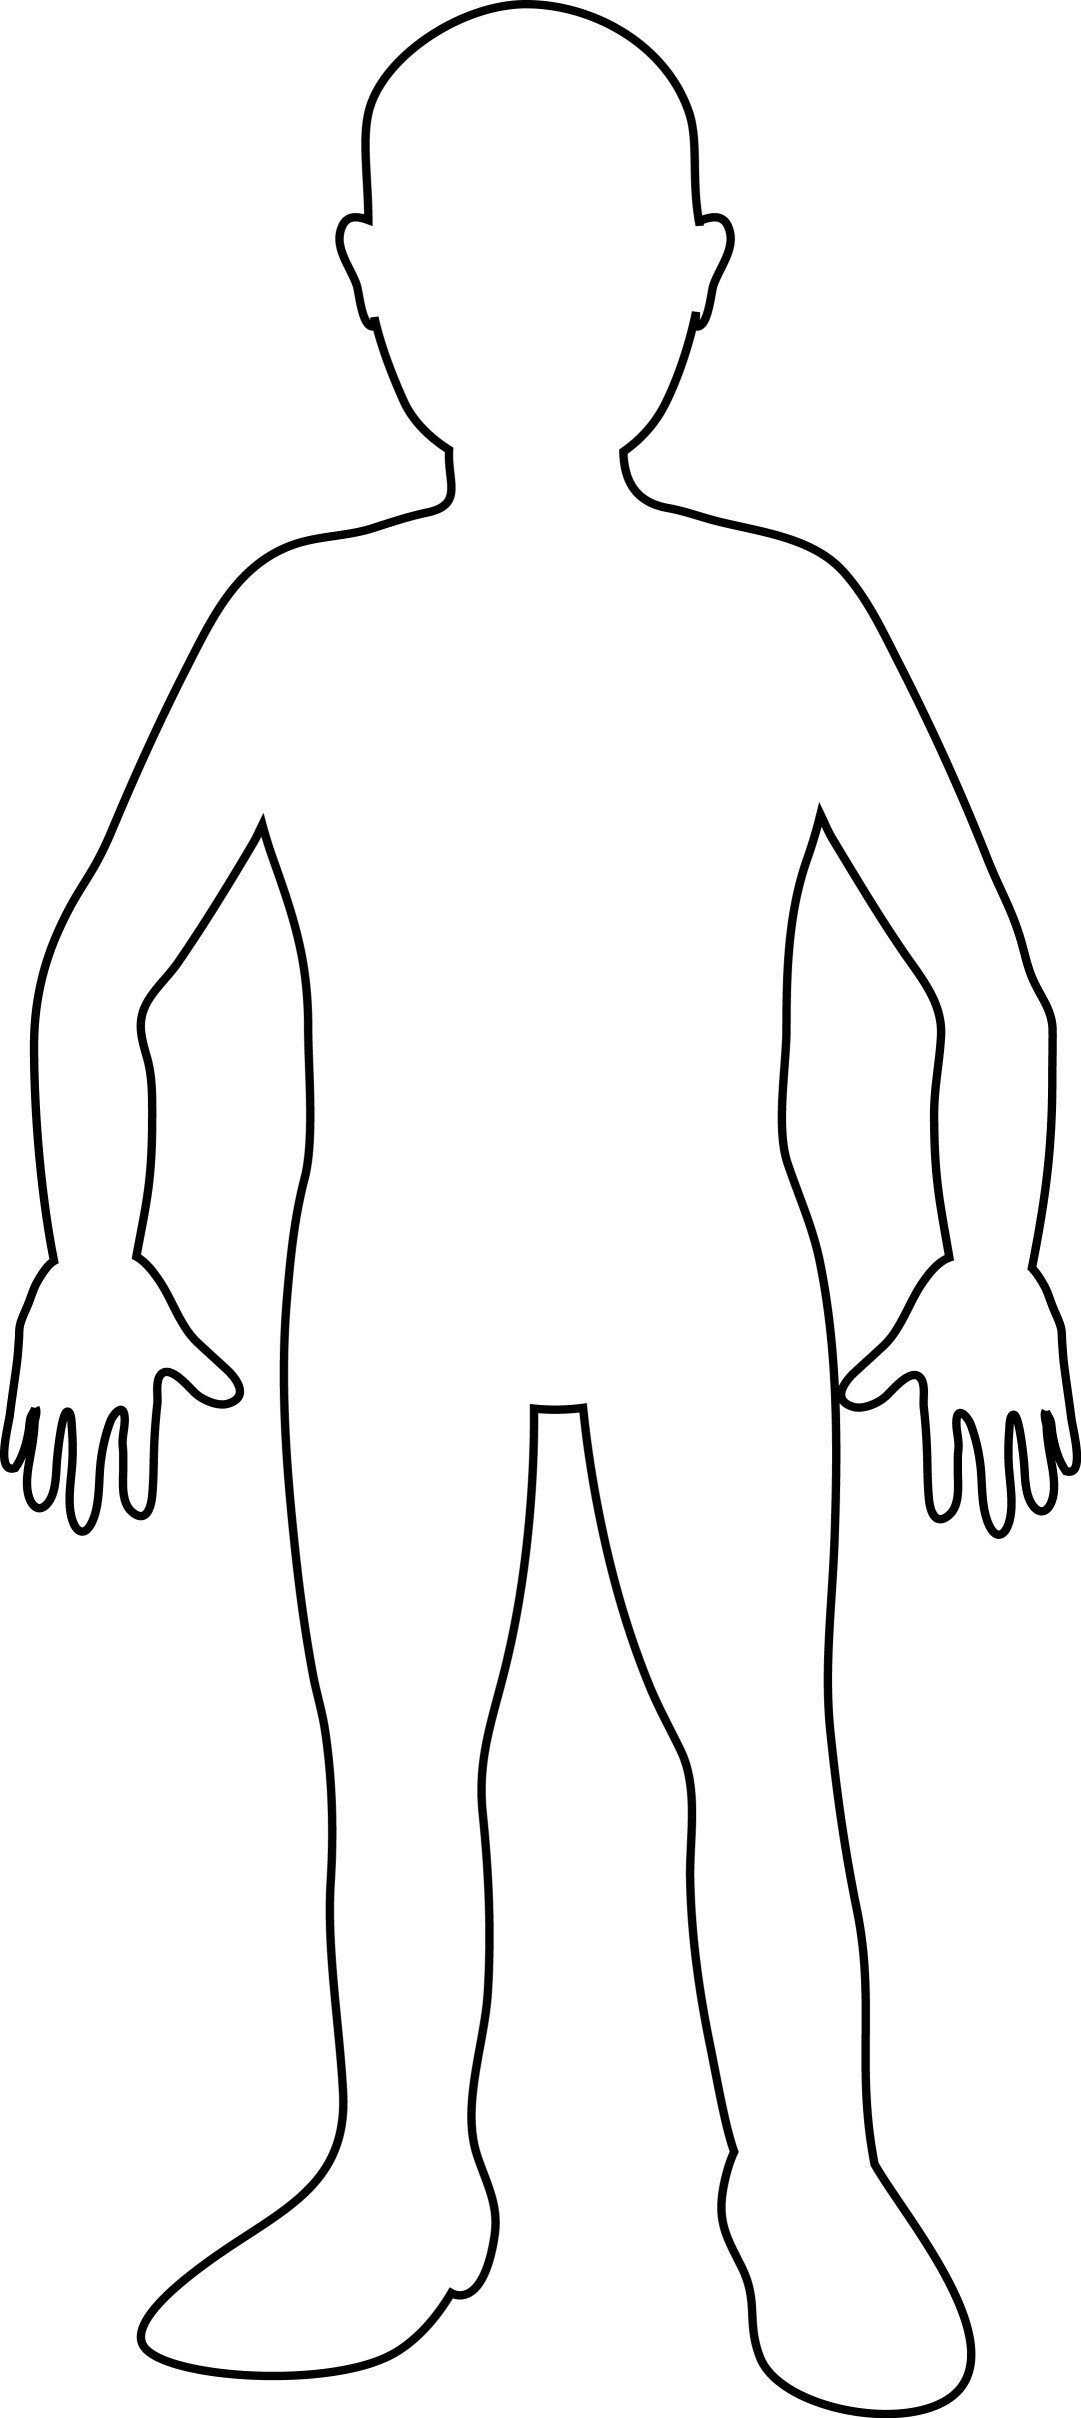 Human Body Outline Drawing Body Template for Kids Clipart Best